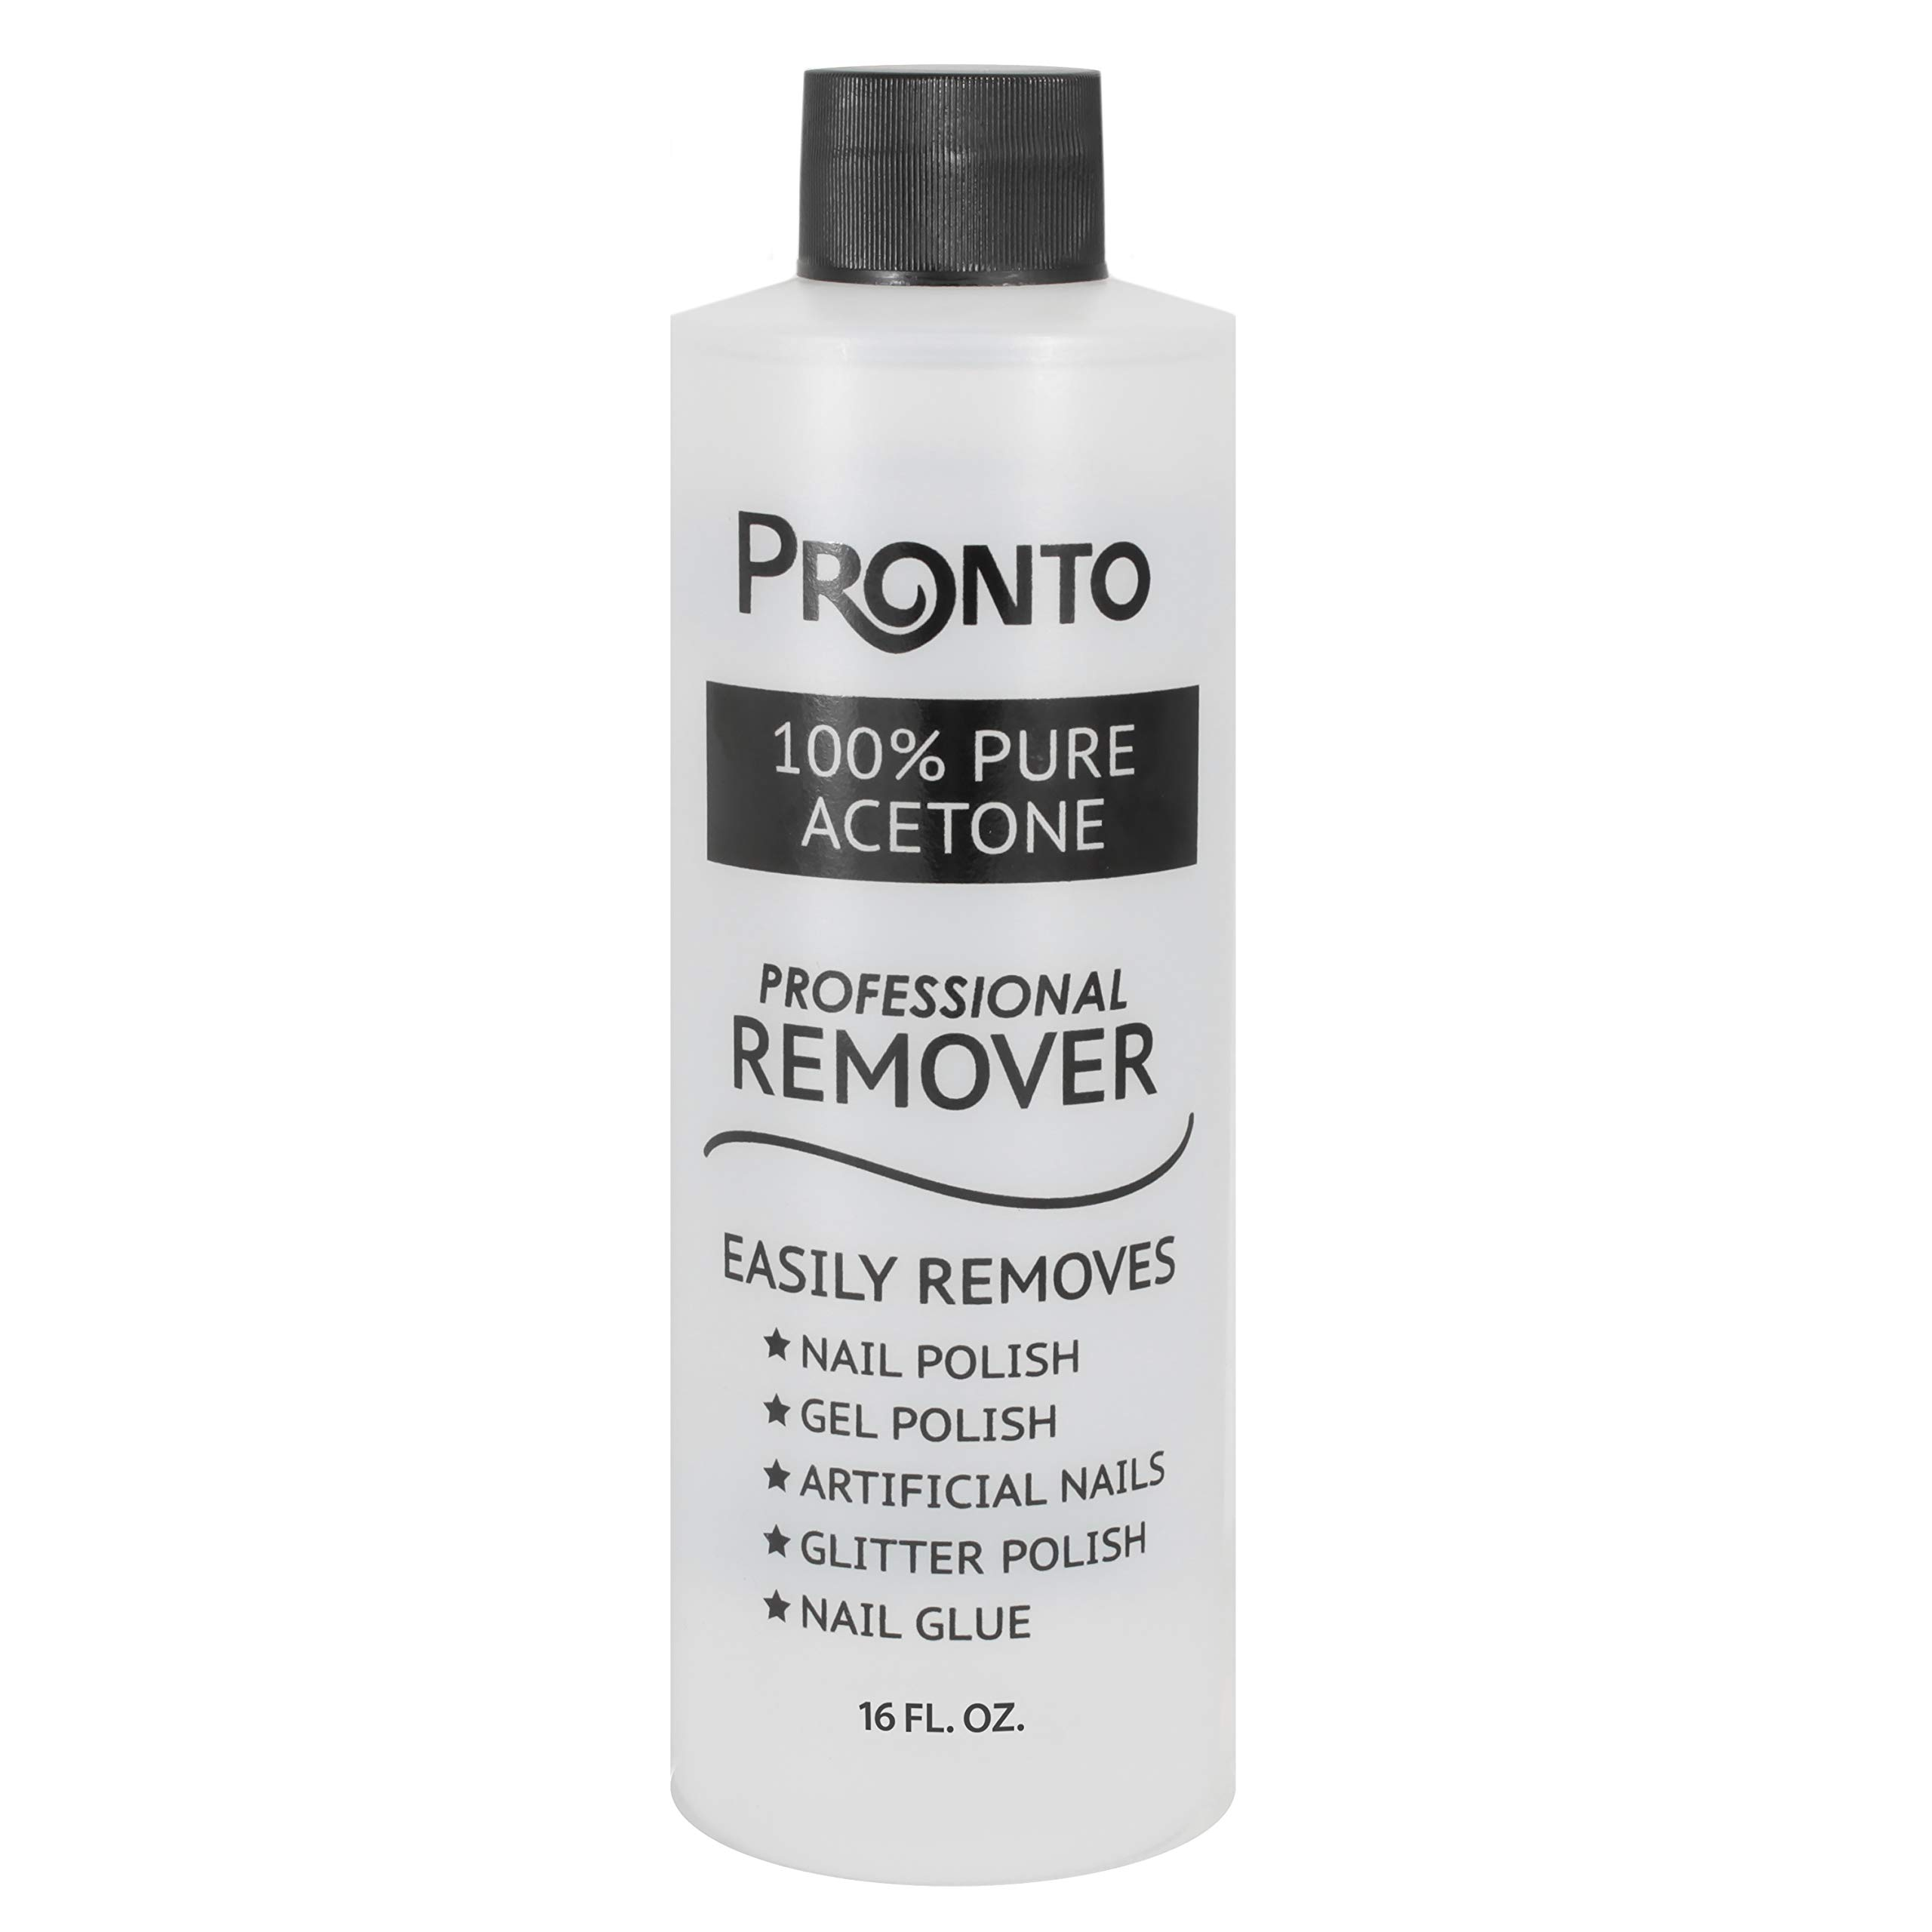 Pronto 100% Pure Acetone - Quick, Professional Nail Polish Remover - For Natural, Gel, Acrylic, Sculptured Nails (16 Ounces) by Pronto